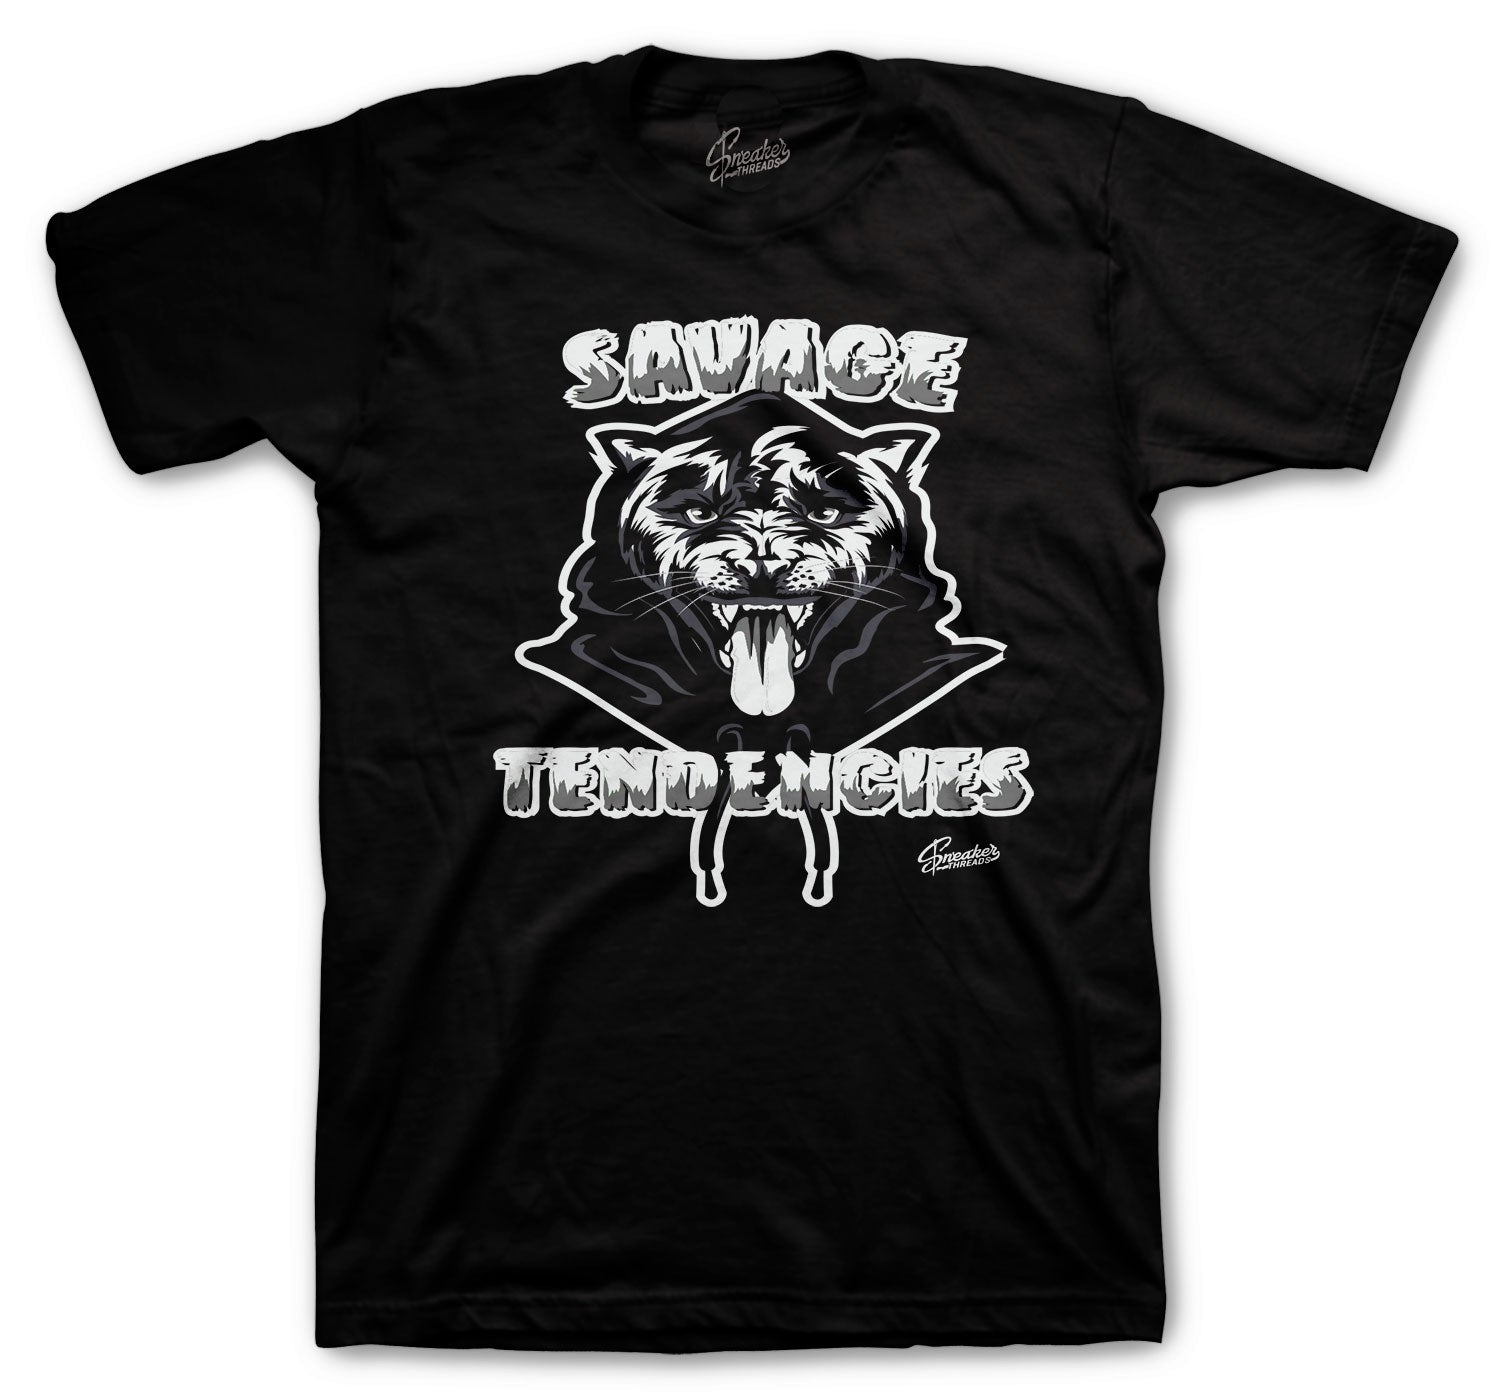 Jordan 4 Black Cat Savage Tendencies Shirt